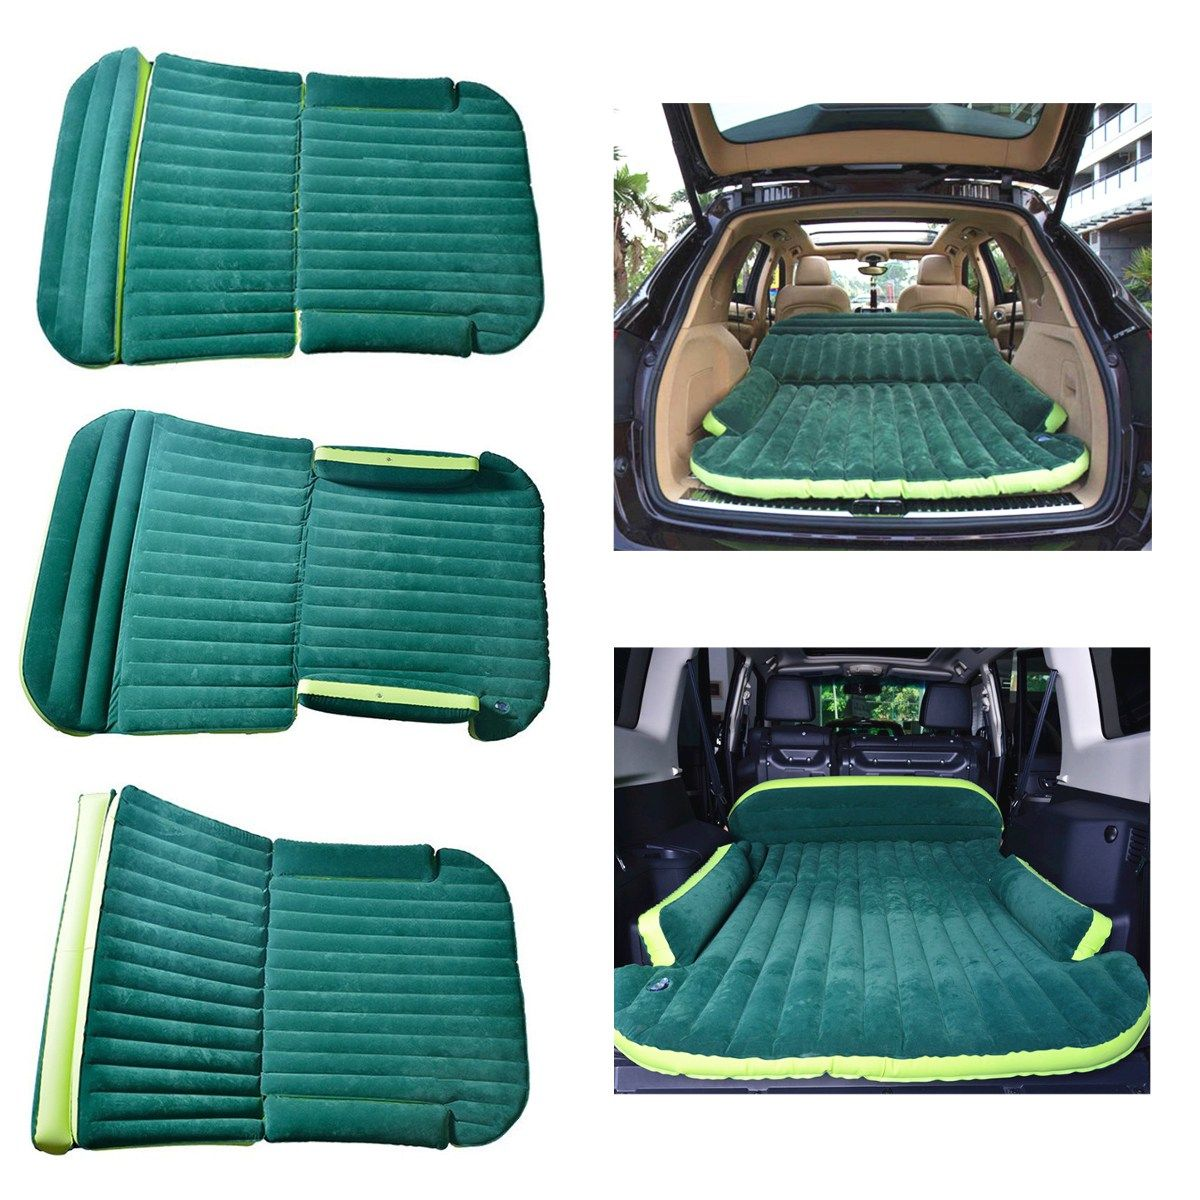 Heavy Duty Inflatable Air Mattresses for Truck Bed/SUV